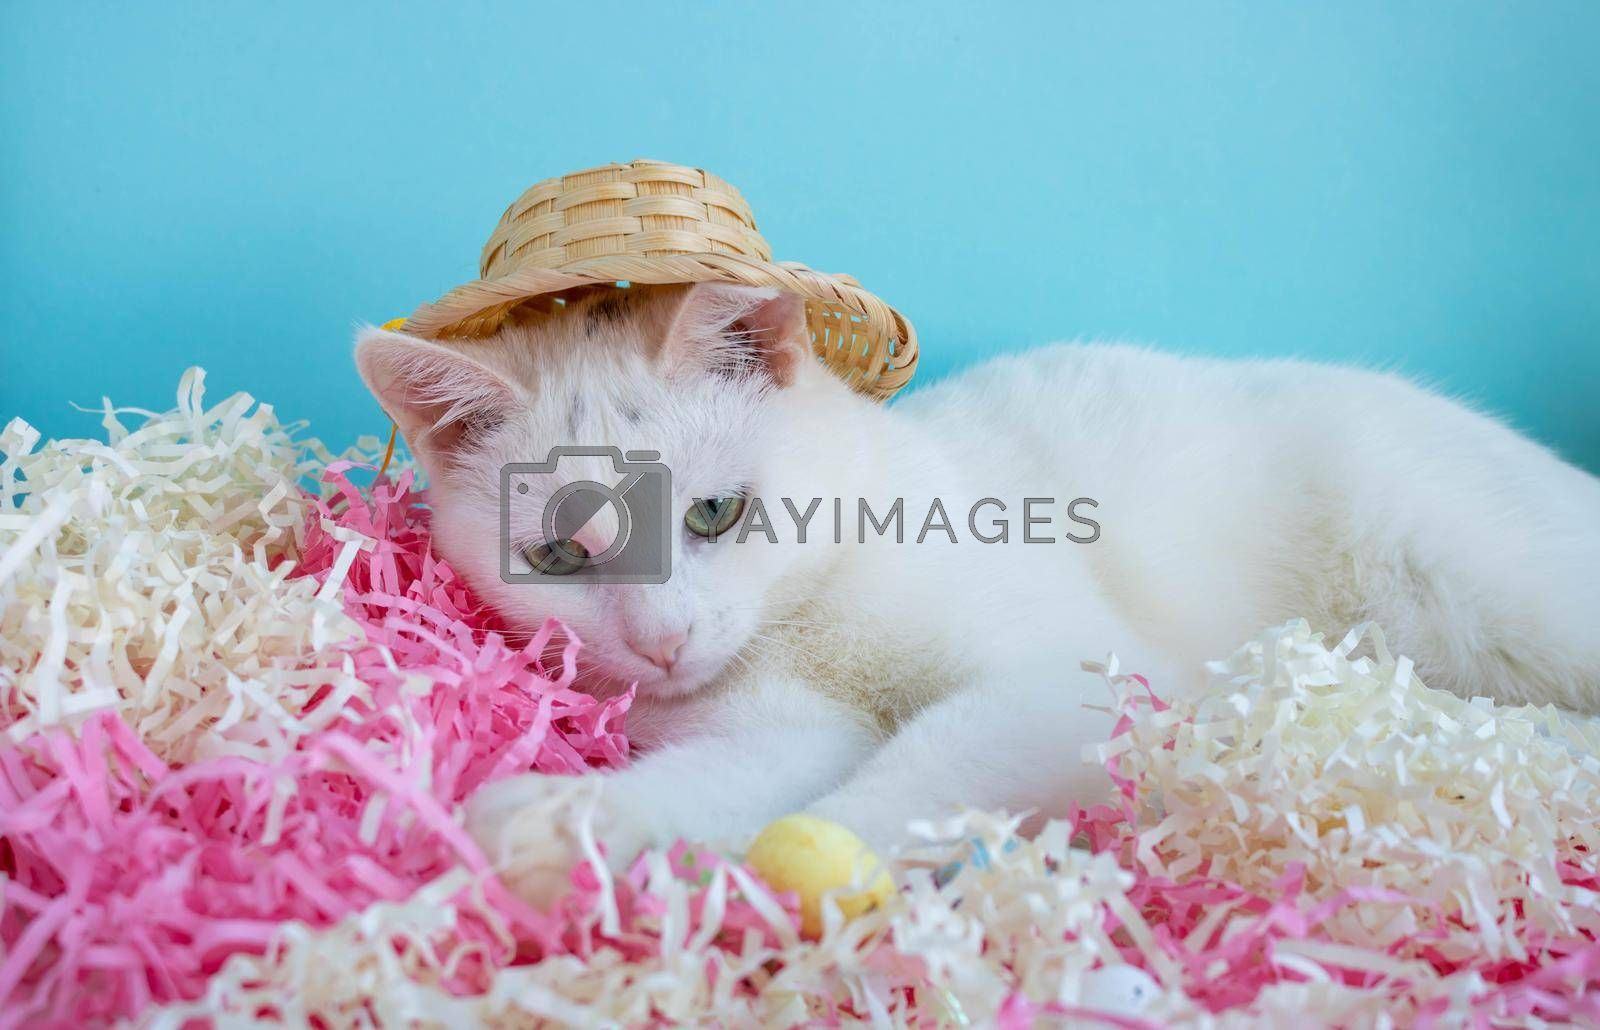 A cute white cat in a straw hat is lying on the tinsel next to the eggs. Easter Concept.